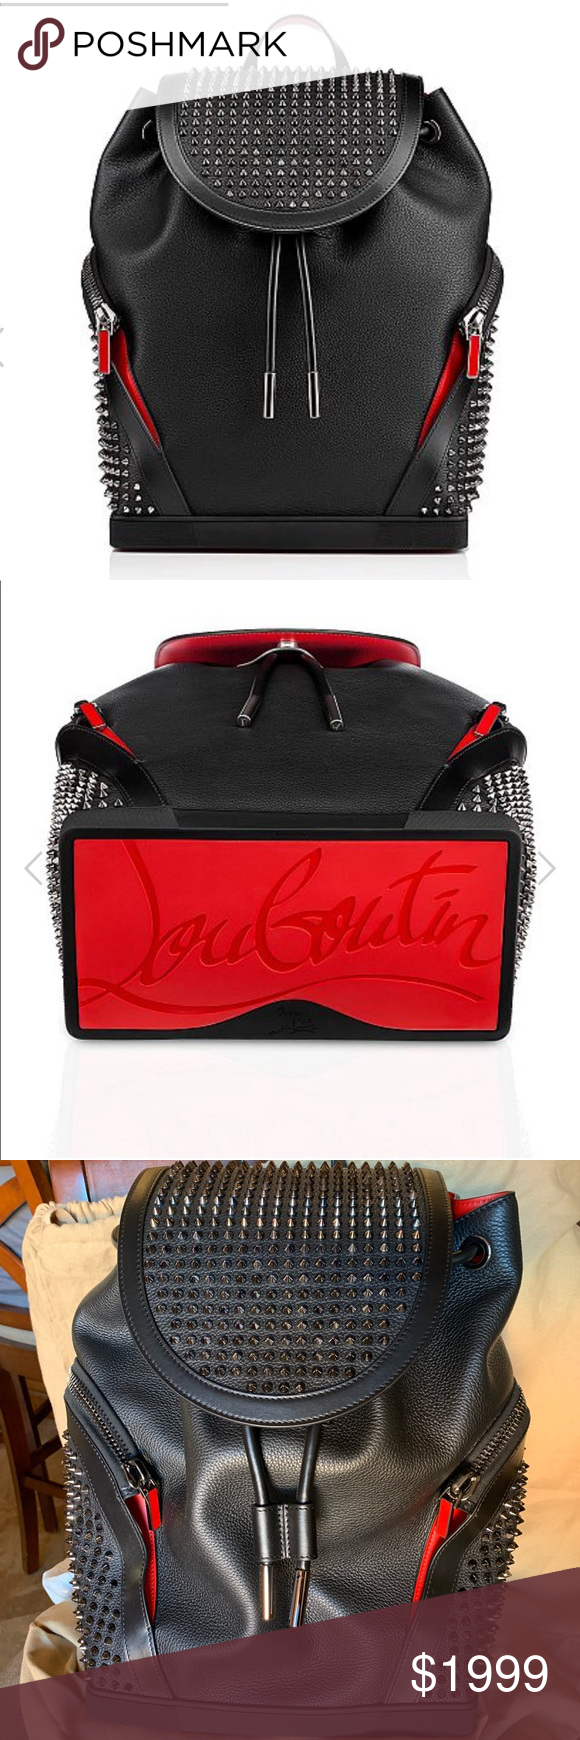 """1862e0331cb Christian Louboutin Explorafunk Backpack-NEW Christian Louboutin  Explorafunk Men s Backpack is brand new. My husband loves his """"Red Bottom""""  shoes"""